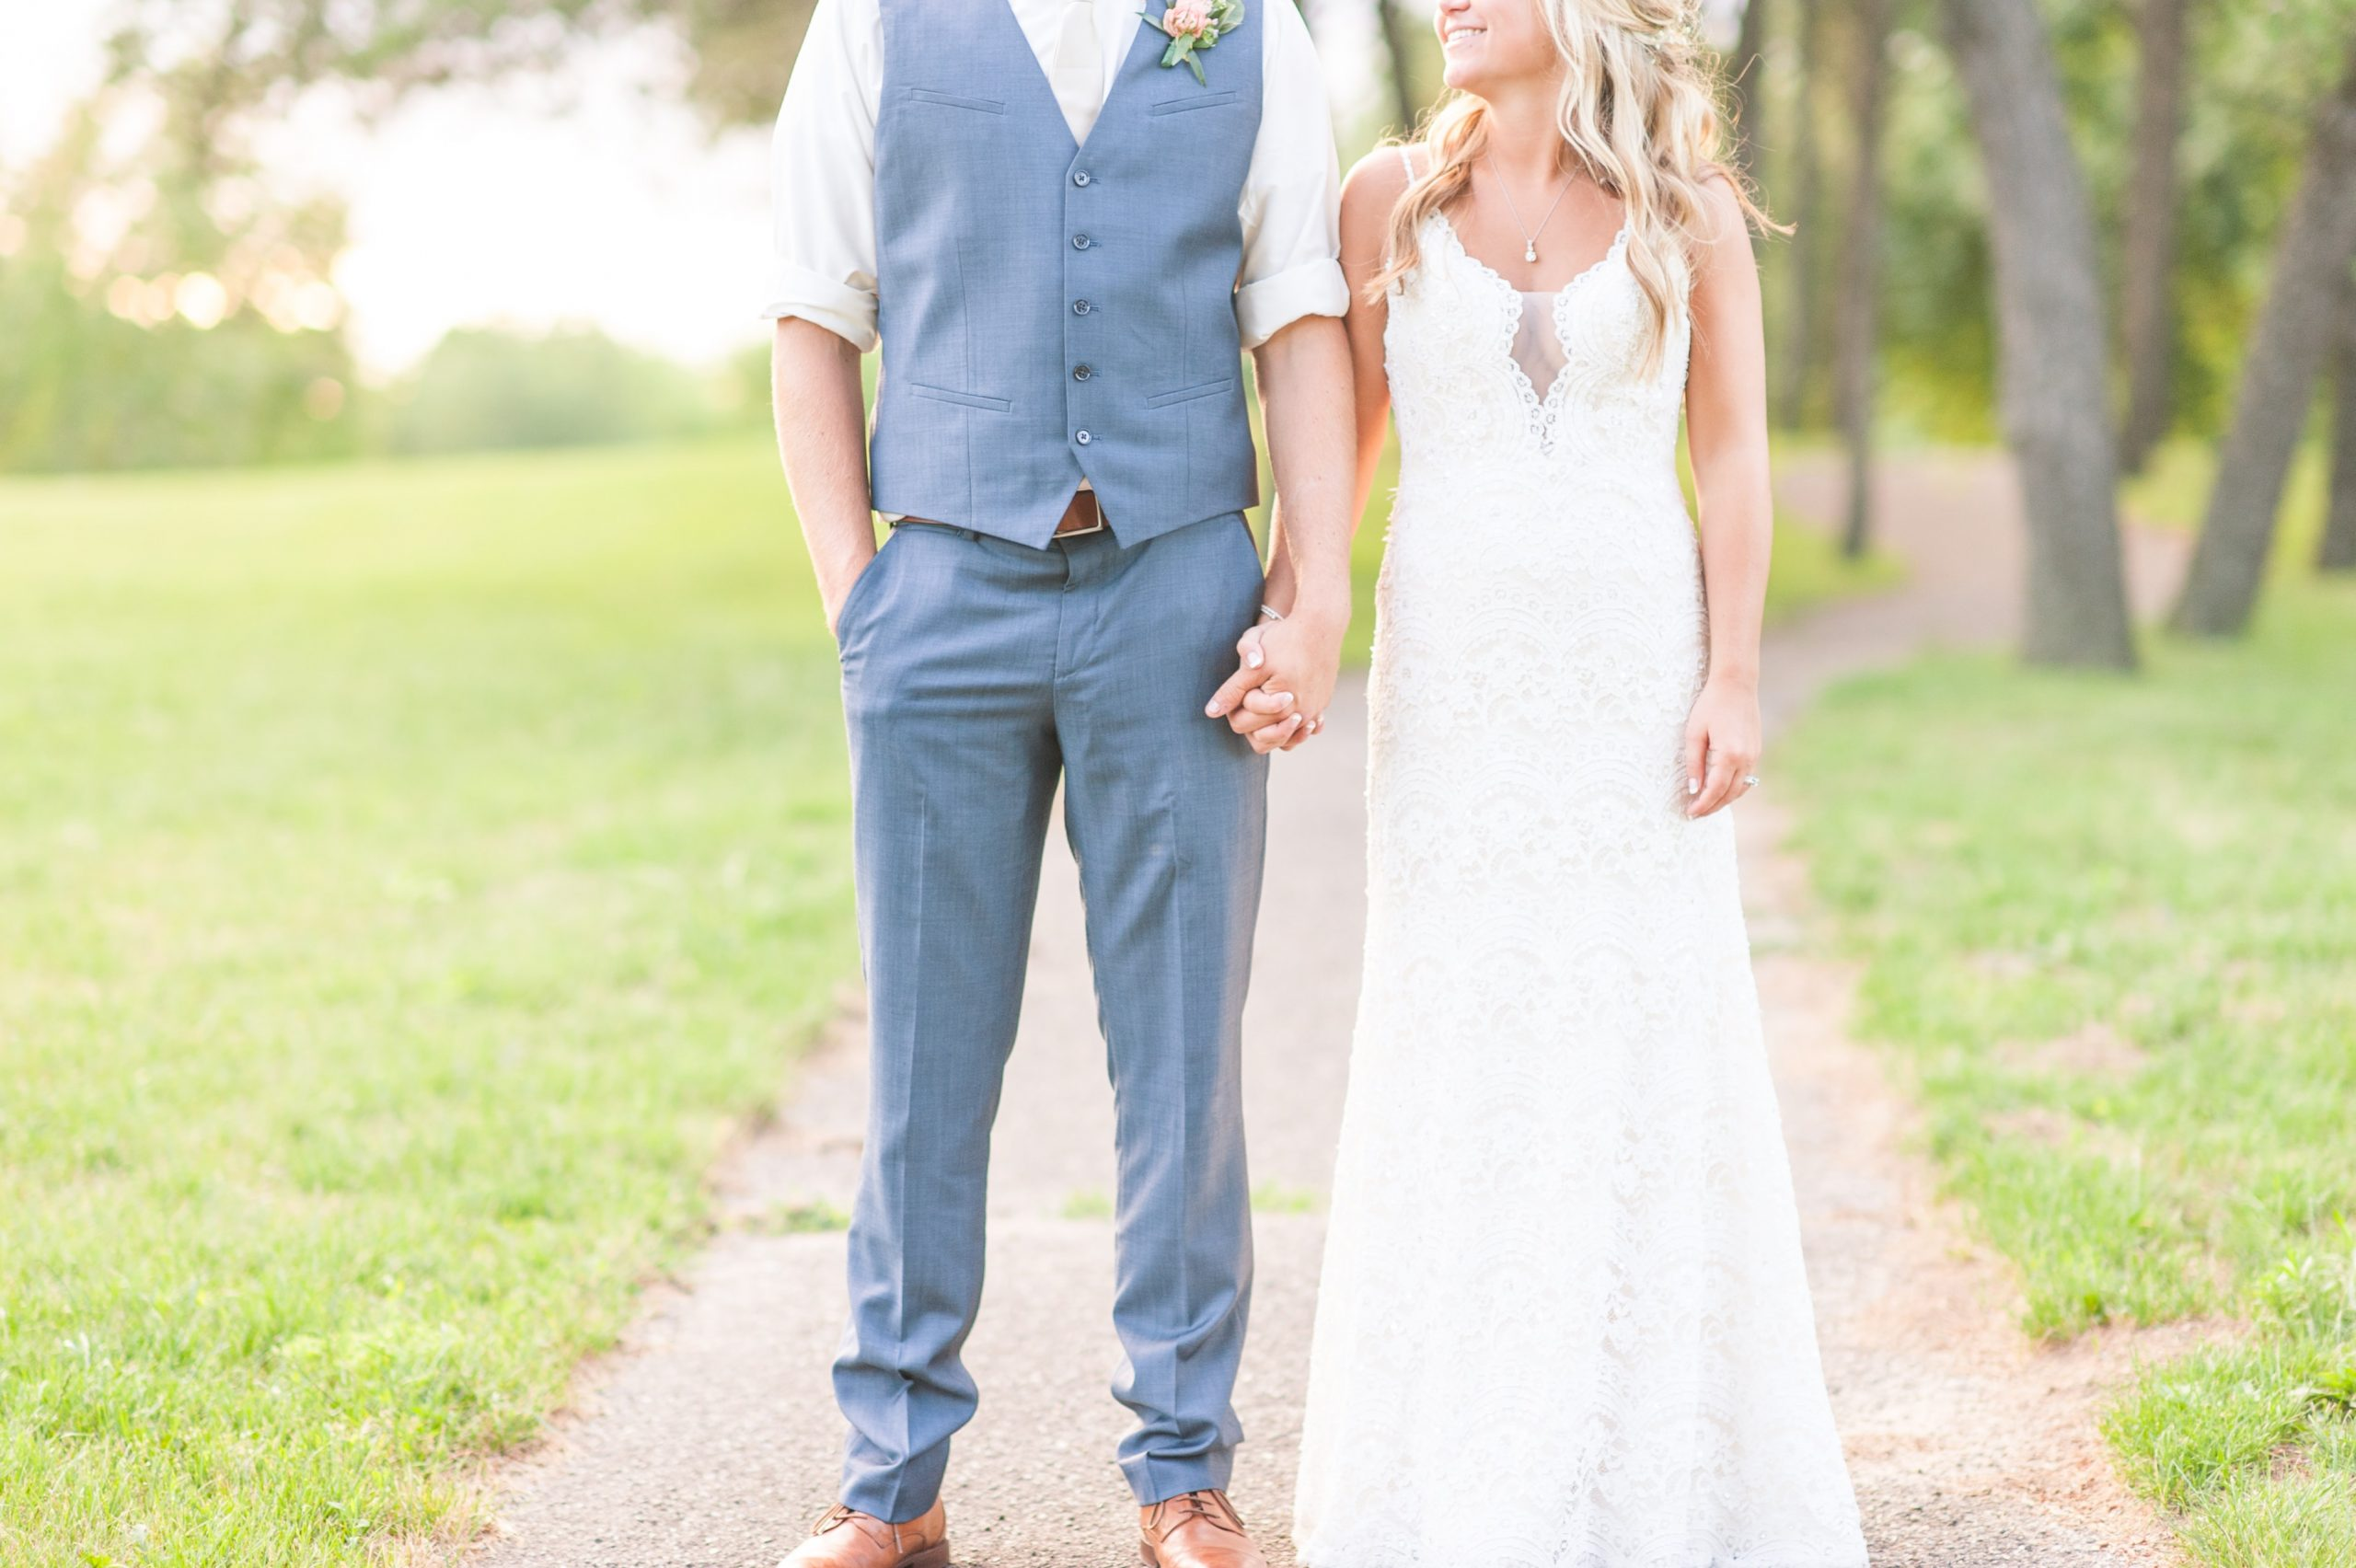 Bride and Groom Outdoors